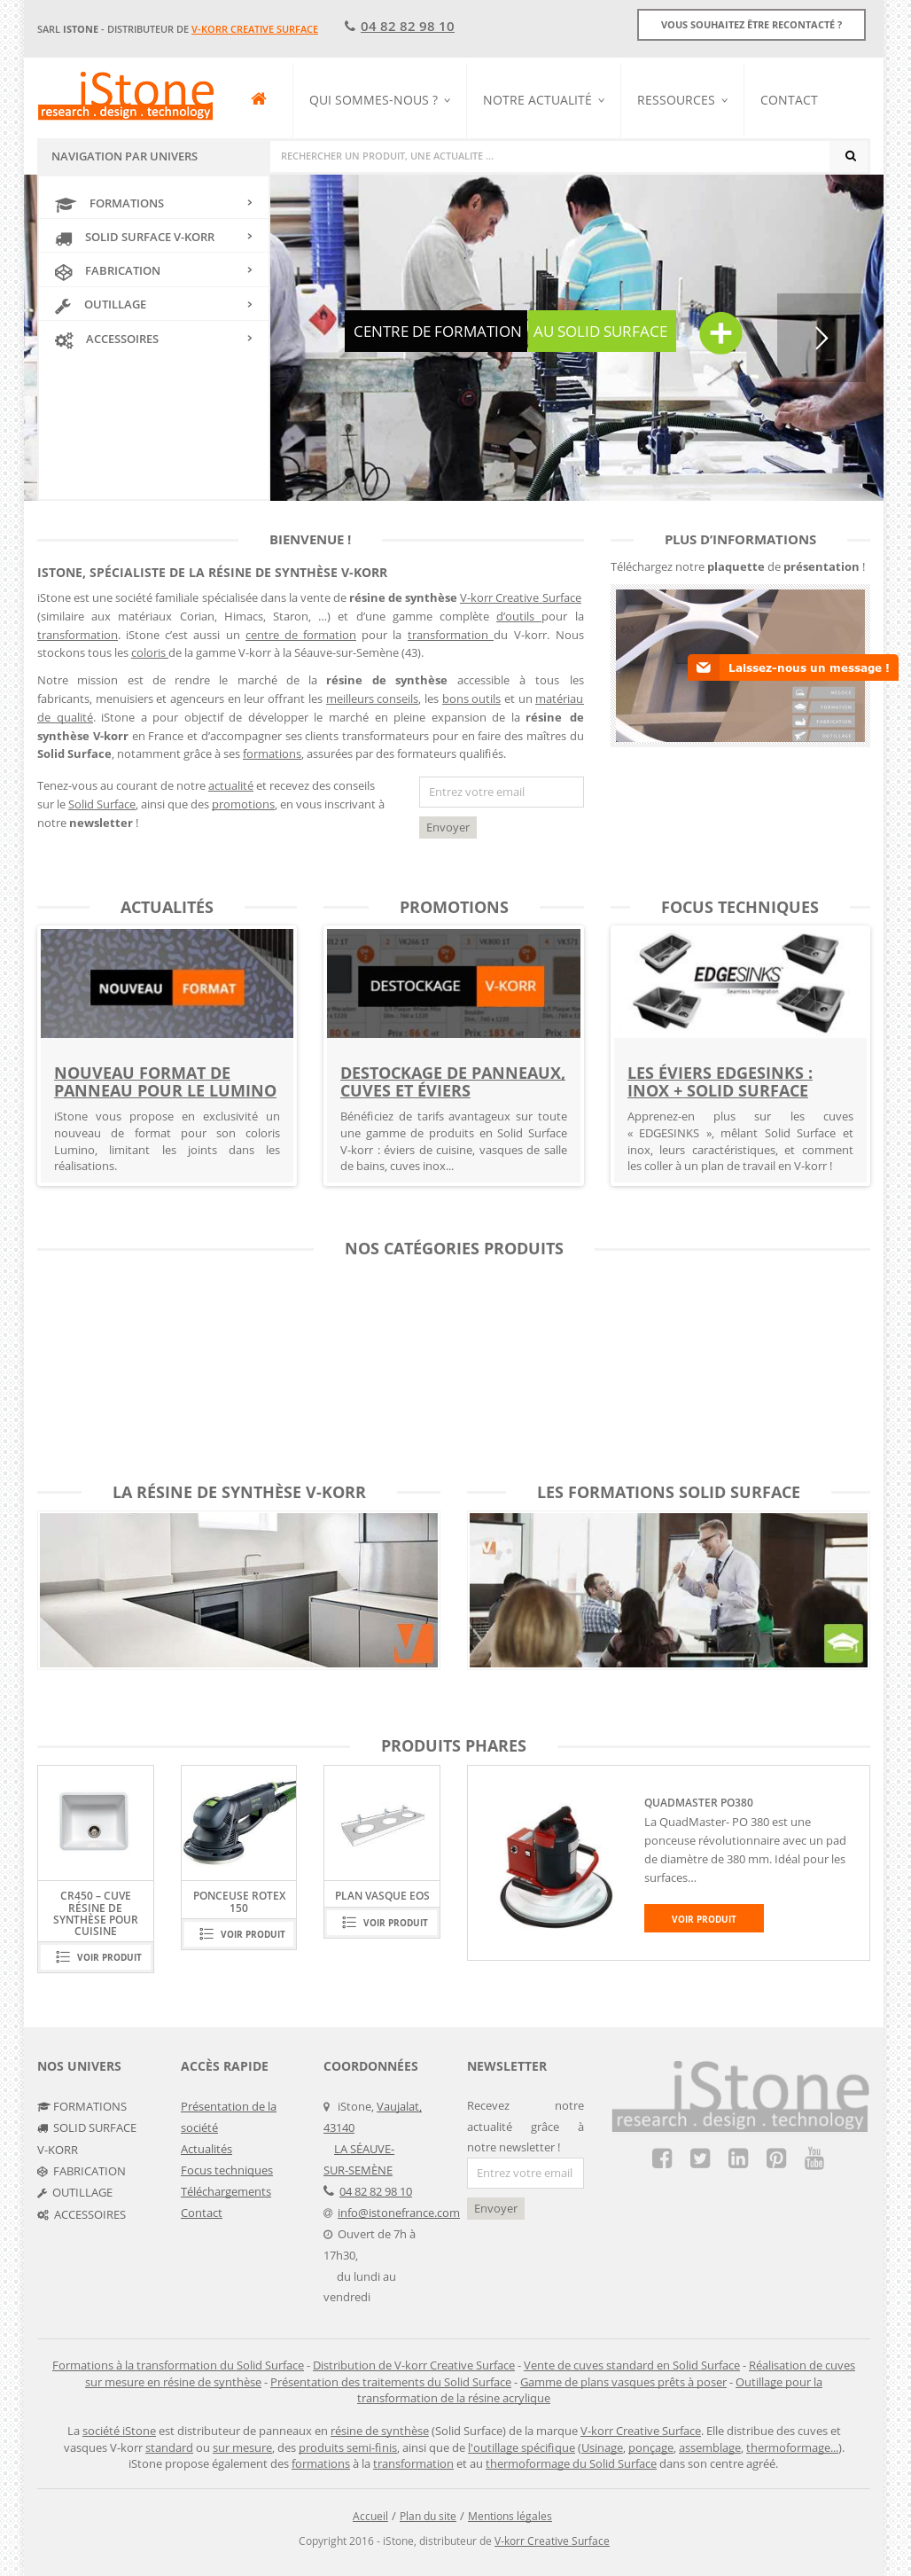 Coller 2 Plan De Travail Cuisine v-korr creative surface competitors, revenue and employees